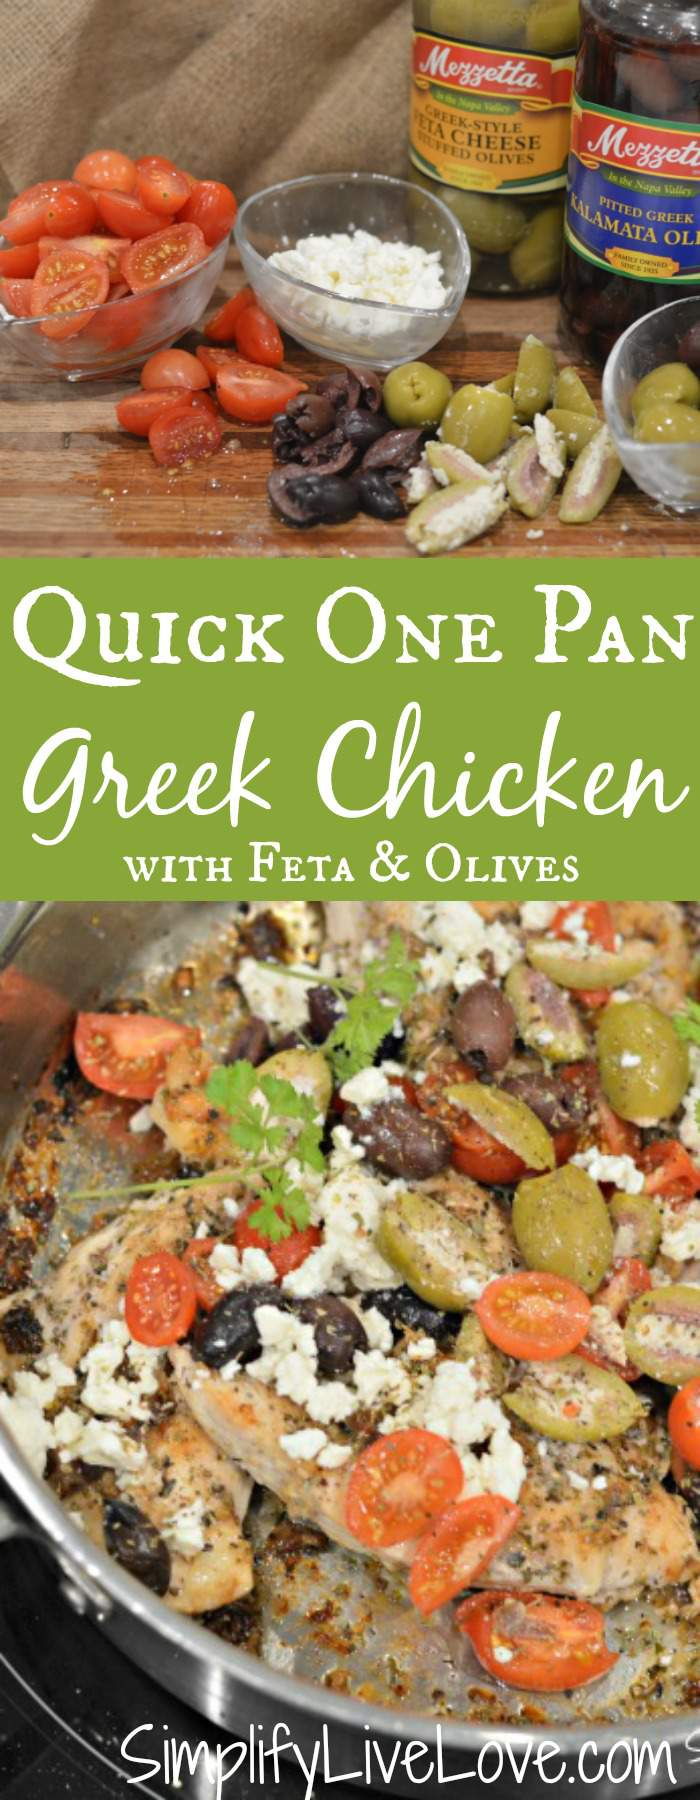 This one pan Greek chicken w feta cheese & Greek olives is one of my fave Mediterranean recipes. Perfect recipe = Quick to prep, clean up, and cook! #ad